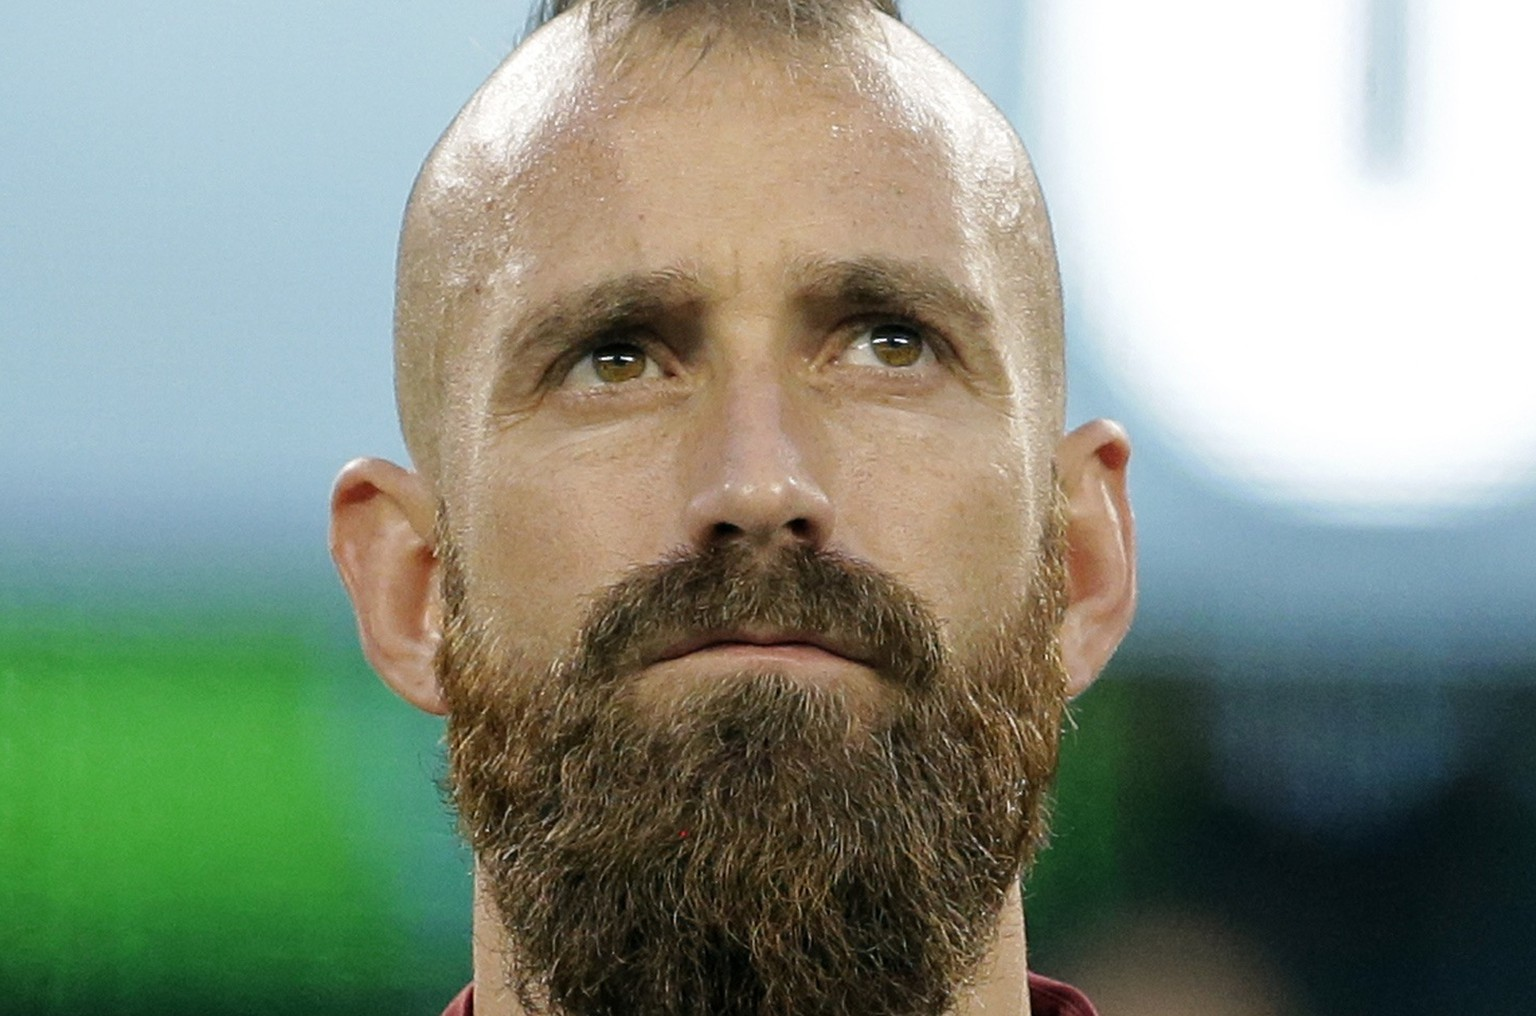 Portugal's Raul Meireles looks on before their international friendly soccer match against Ireland, ahead of the 2014 World Cup, in East Rutherford, New Jersey, June 10, 2014.  REUTERS/Ray Stubblebine (UNITED STATES - Tags: SPORT SOCCER WORLD CUP HEADSHOT)